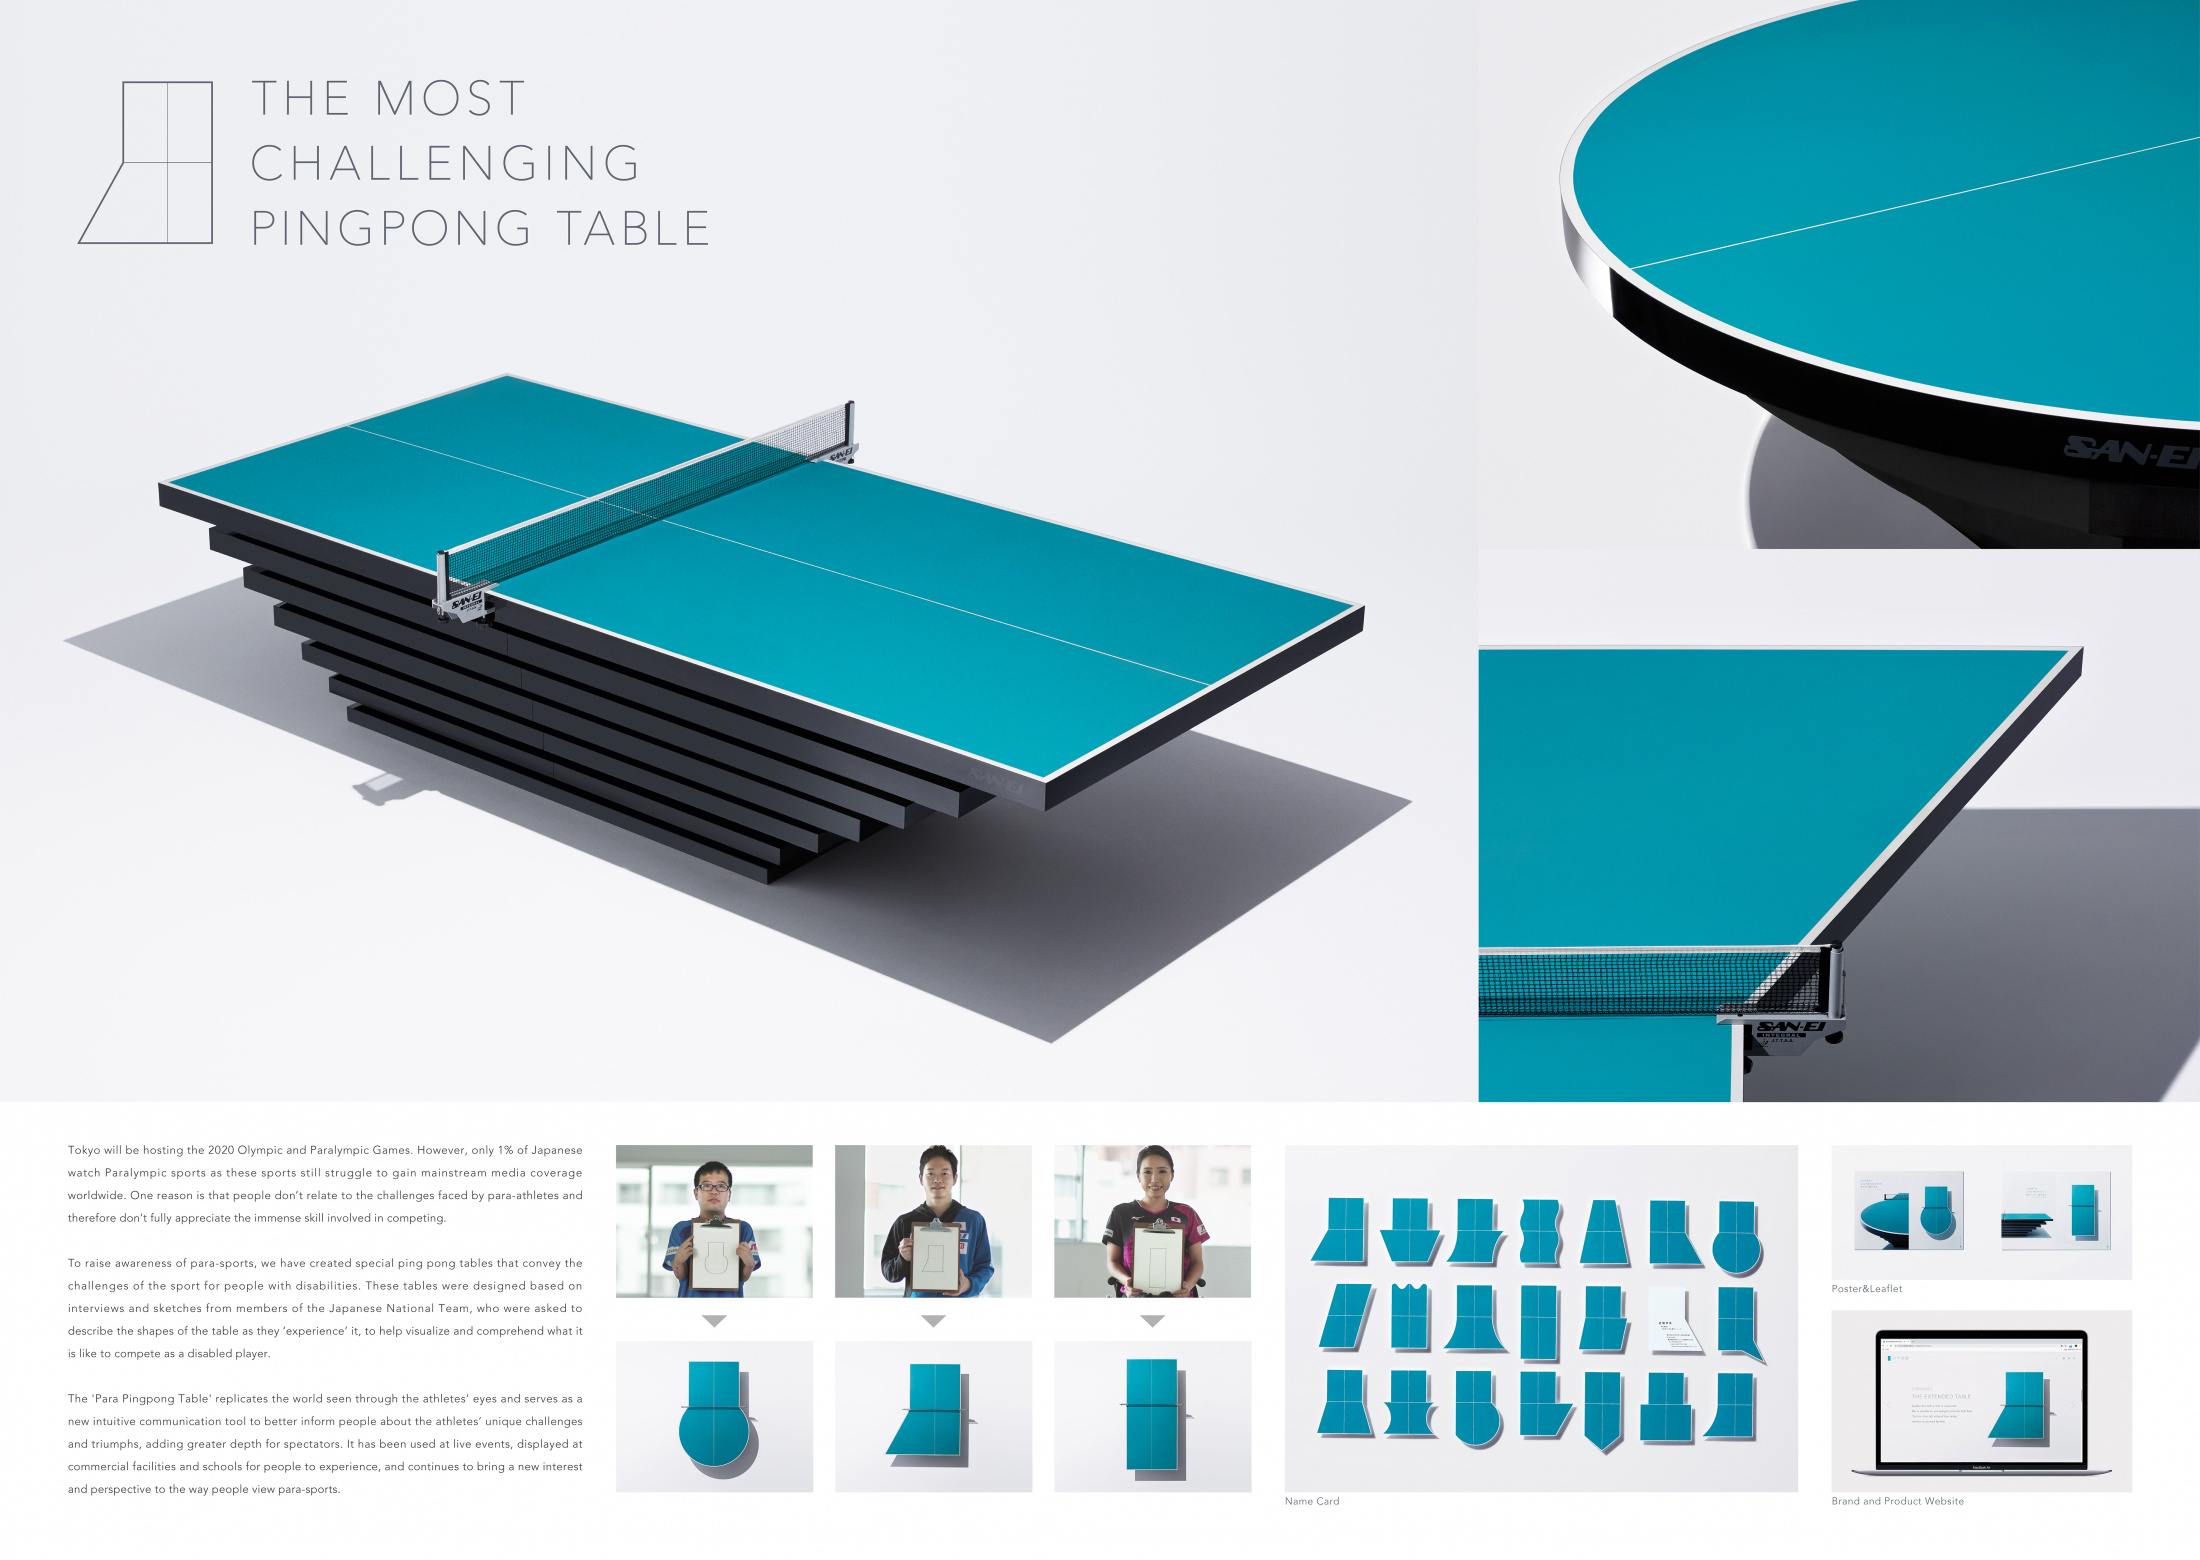 THE MOST CHALLENGING PINGPONG TABLE Thumbnail